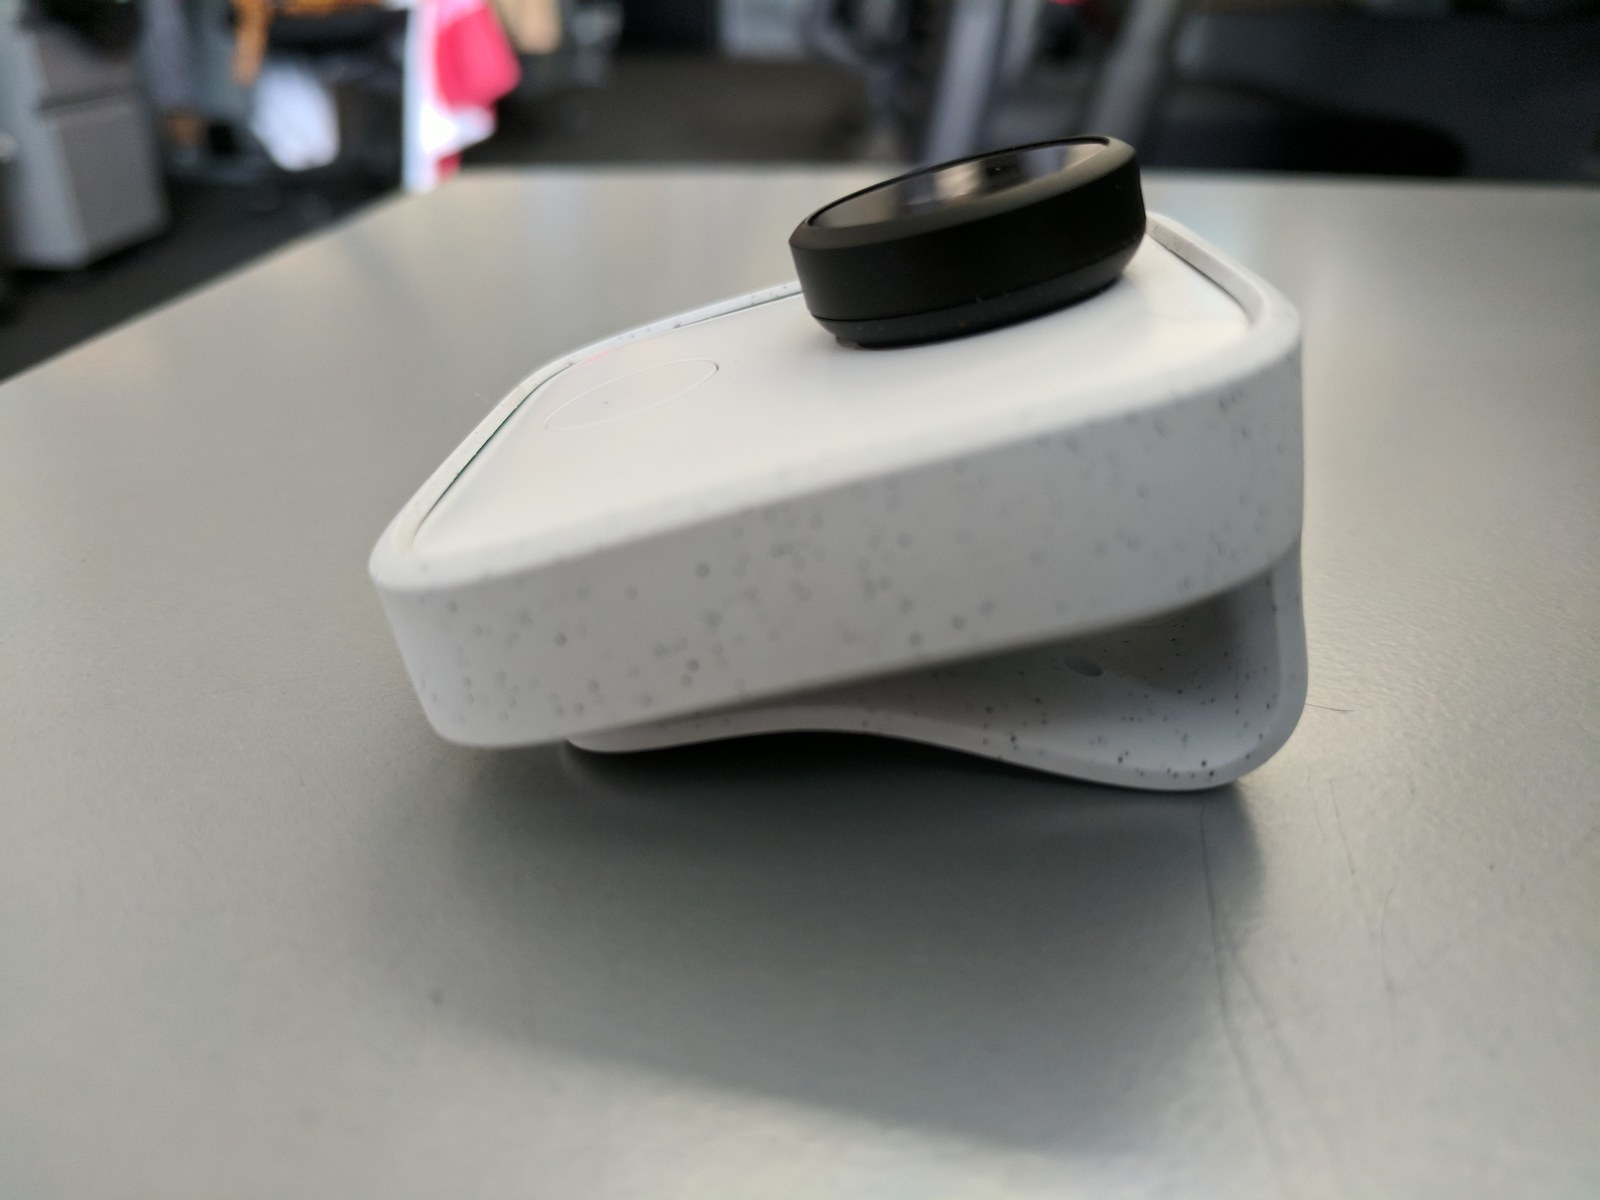 Google Clips takes photos and videos on its own with machine learning